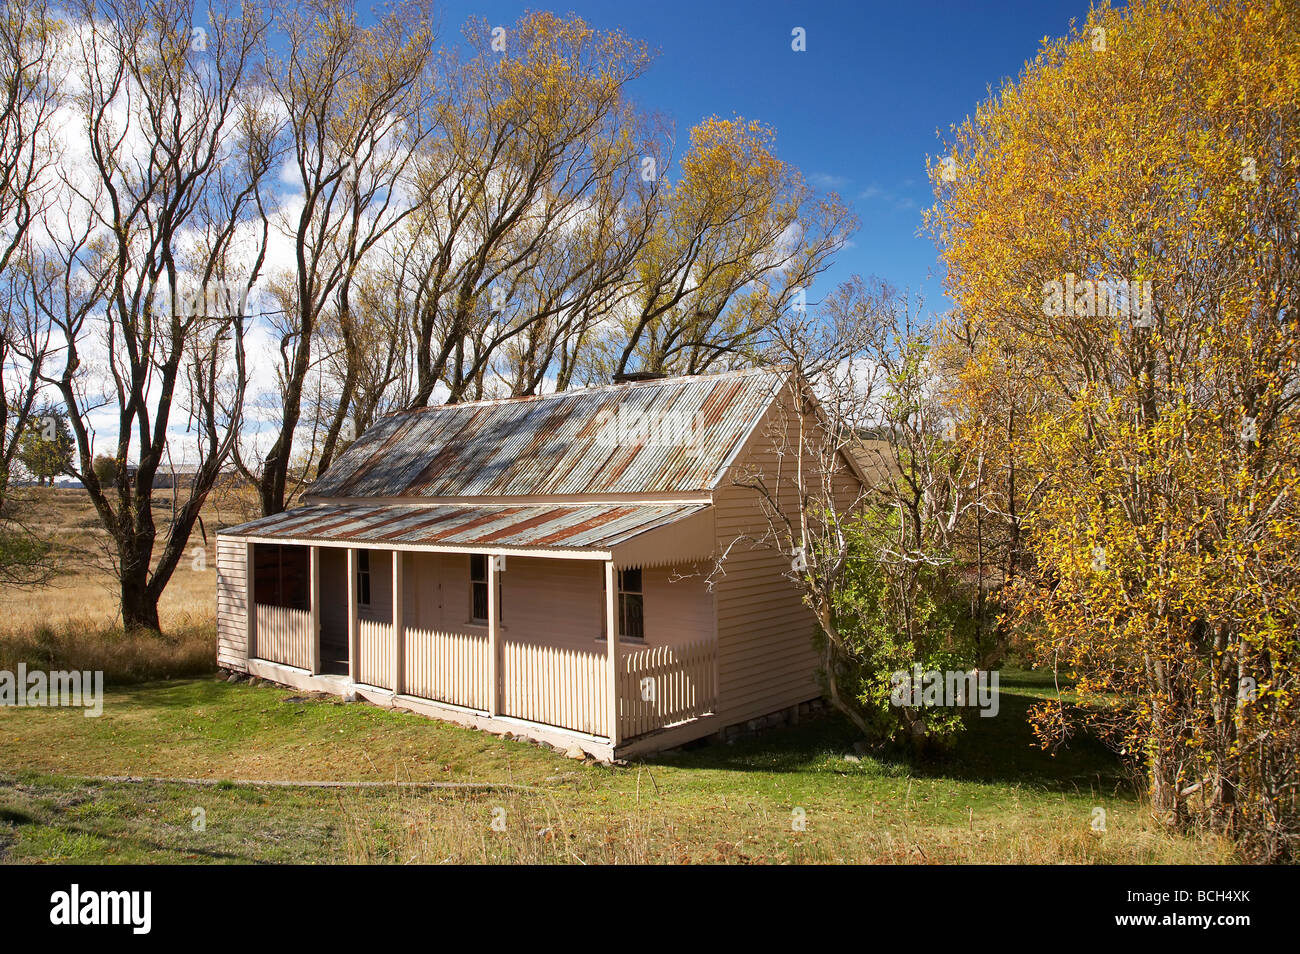 Old Miners Cottage Historic Abandoned Gold Rush Town of Kiandra Kosciuszko National Park Snowy Mountains NSW Australia - Stock Image